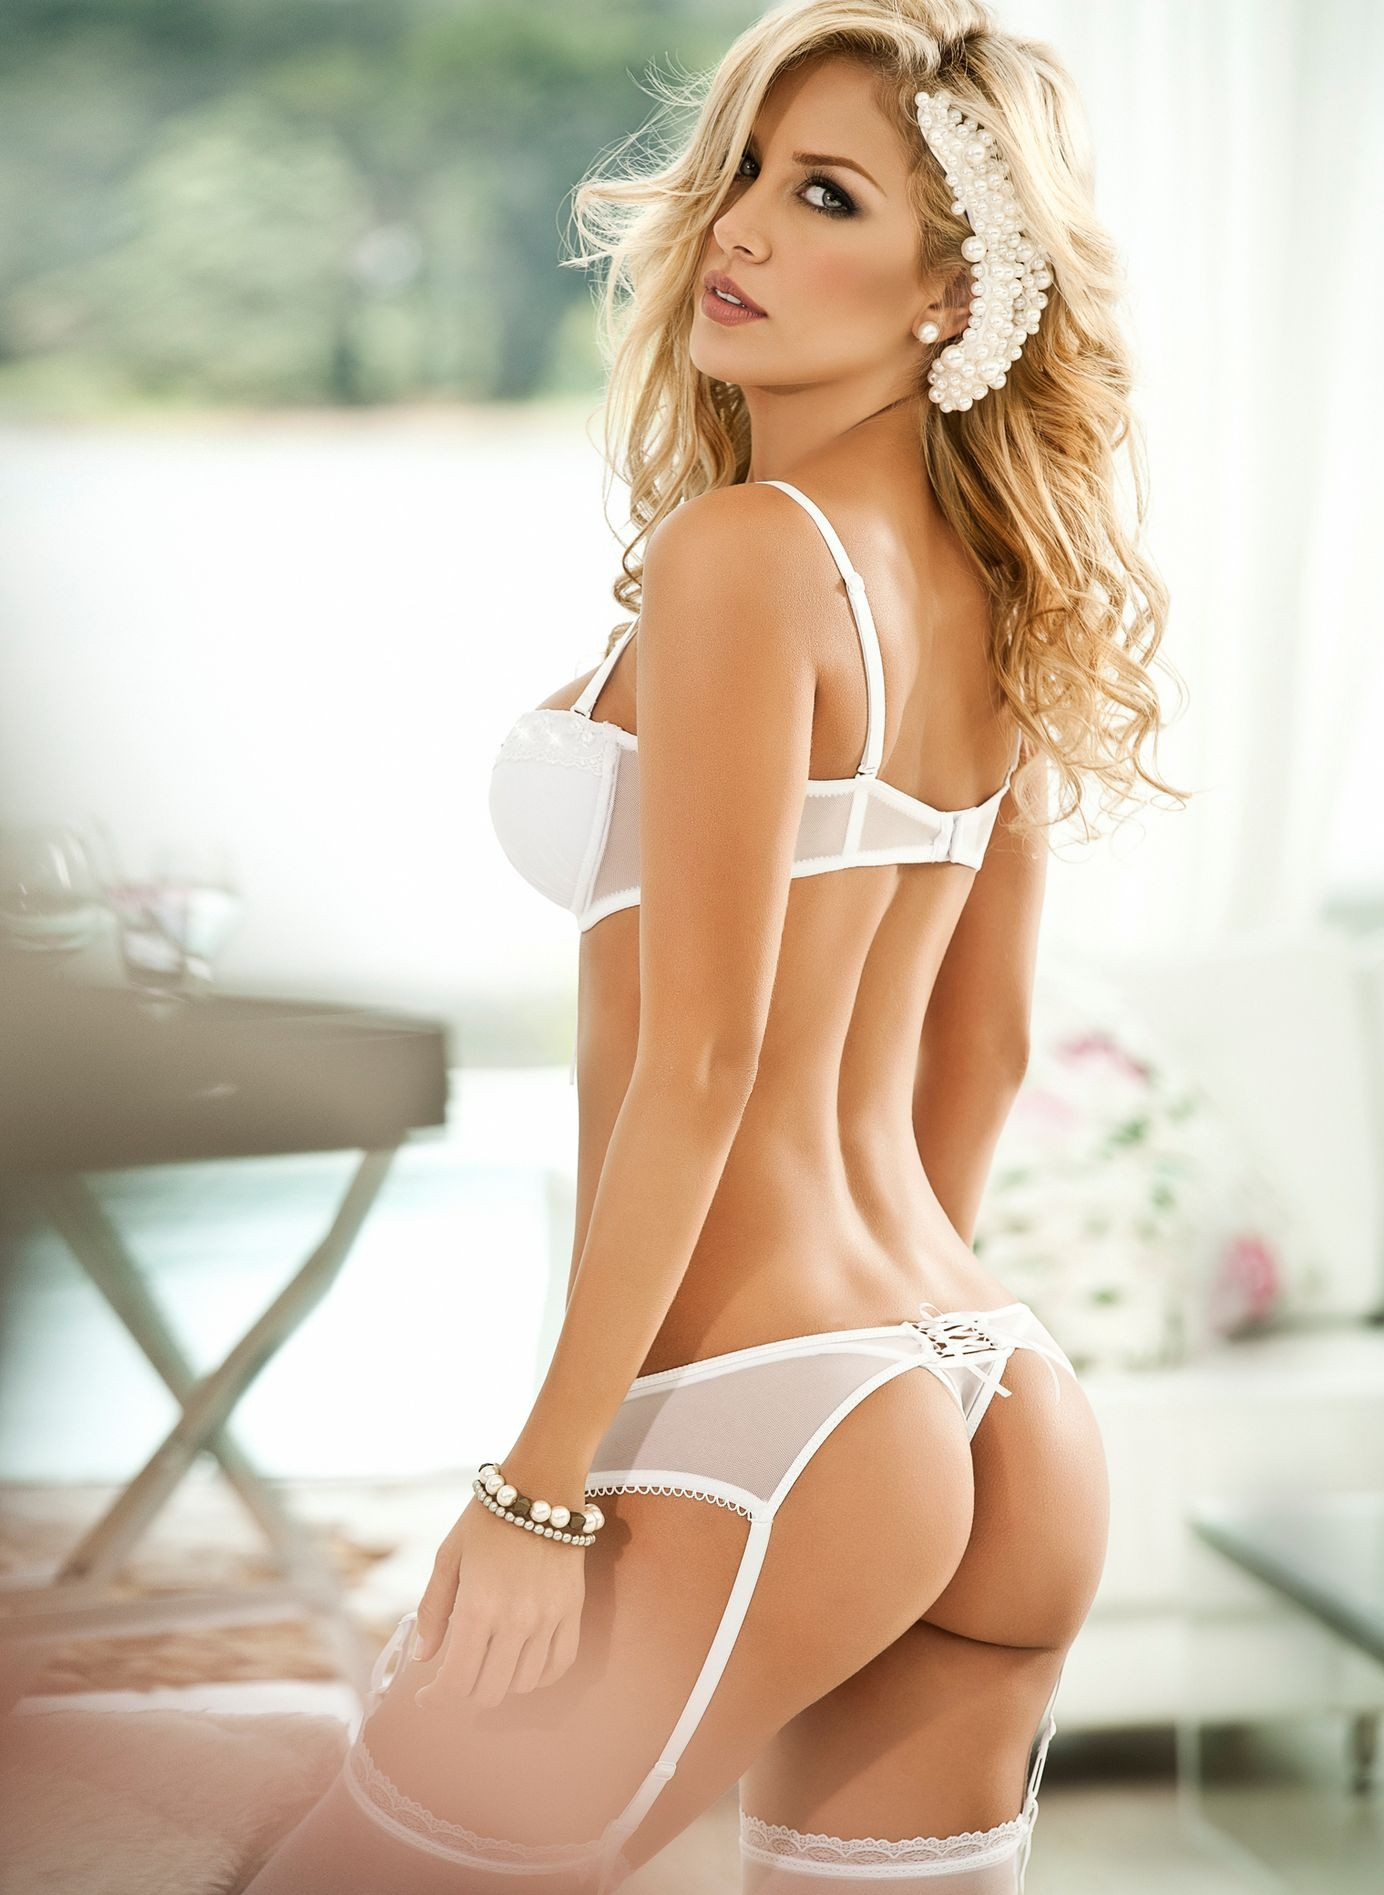 A Lovely Blonde Woman Wearing Sexy Lingerie